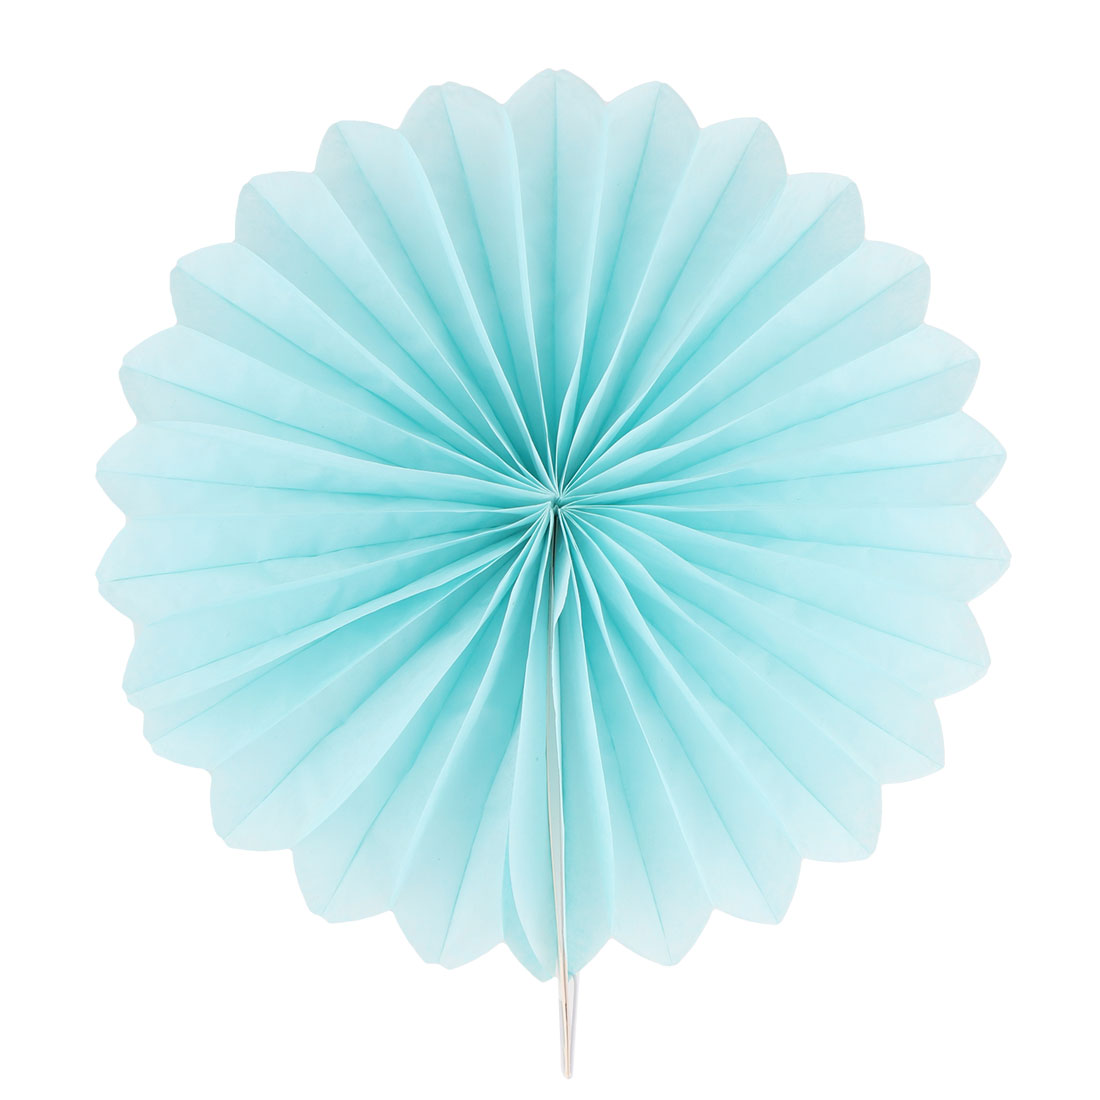 Paper Hollow Out Design Folding Fan Flower Blue for Party Birthday Wedding Home Decor